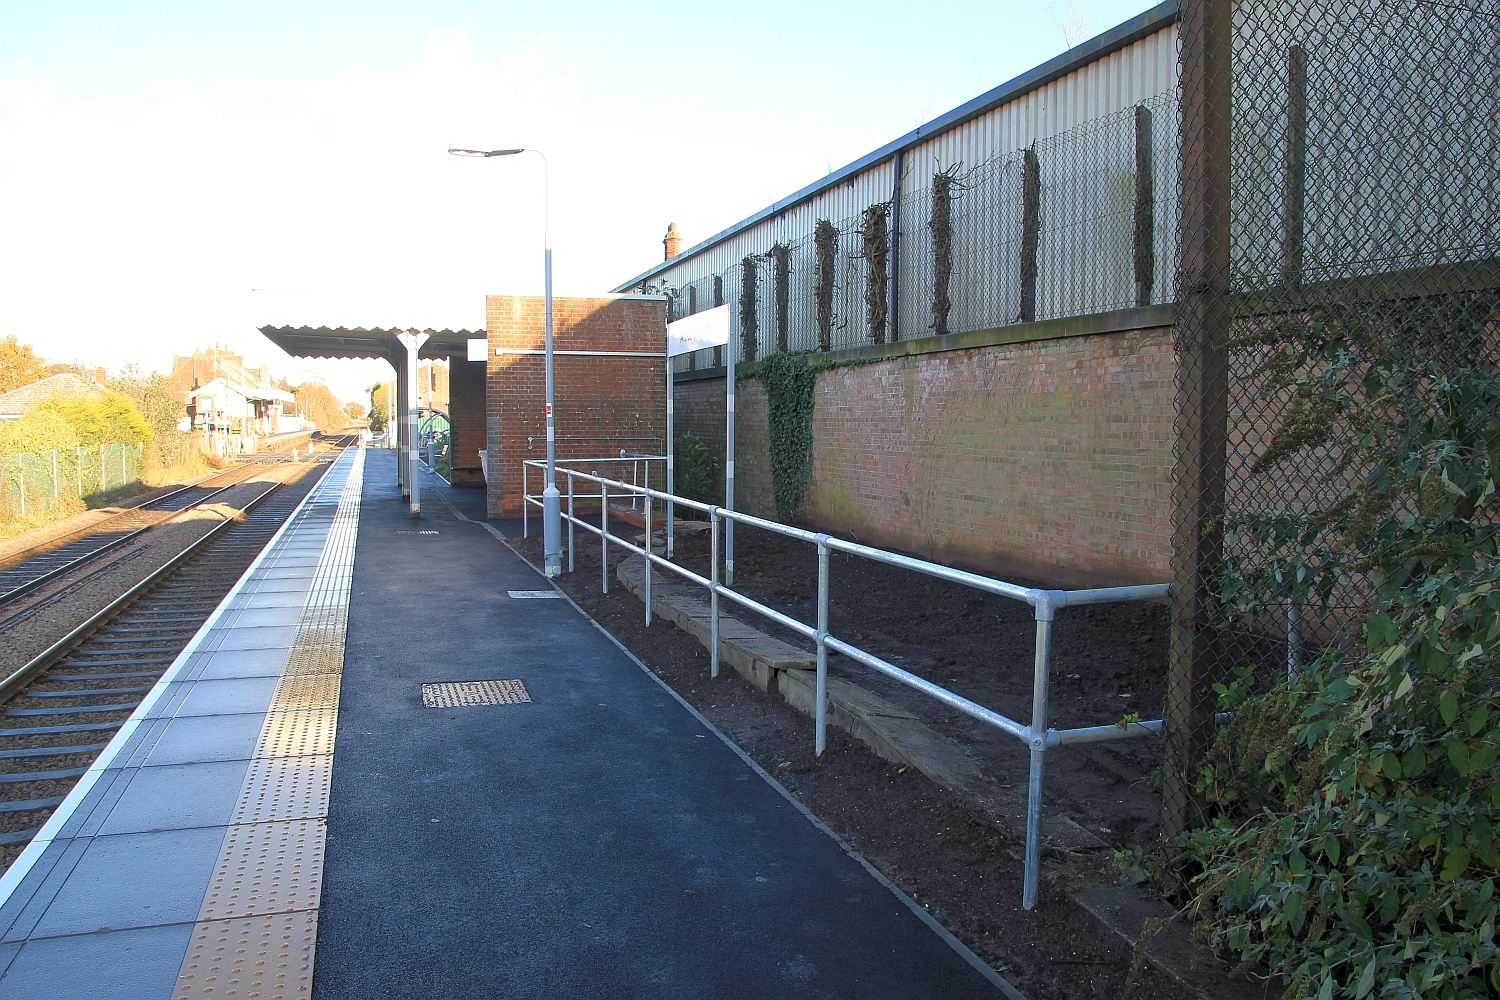 veda_associates_attleborough_station_img_1057.jpg